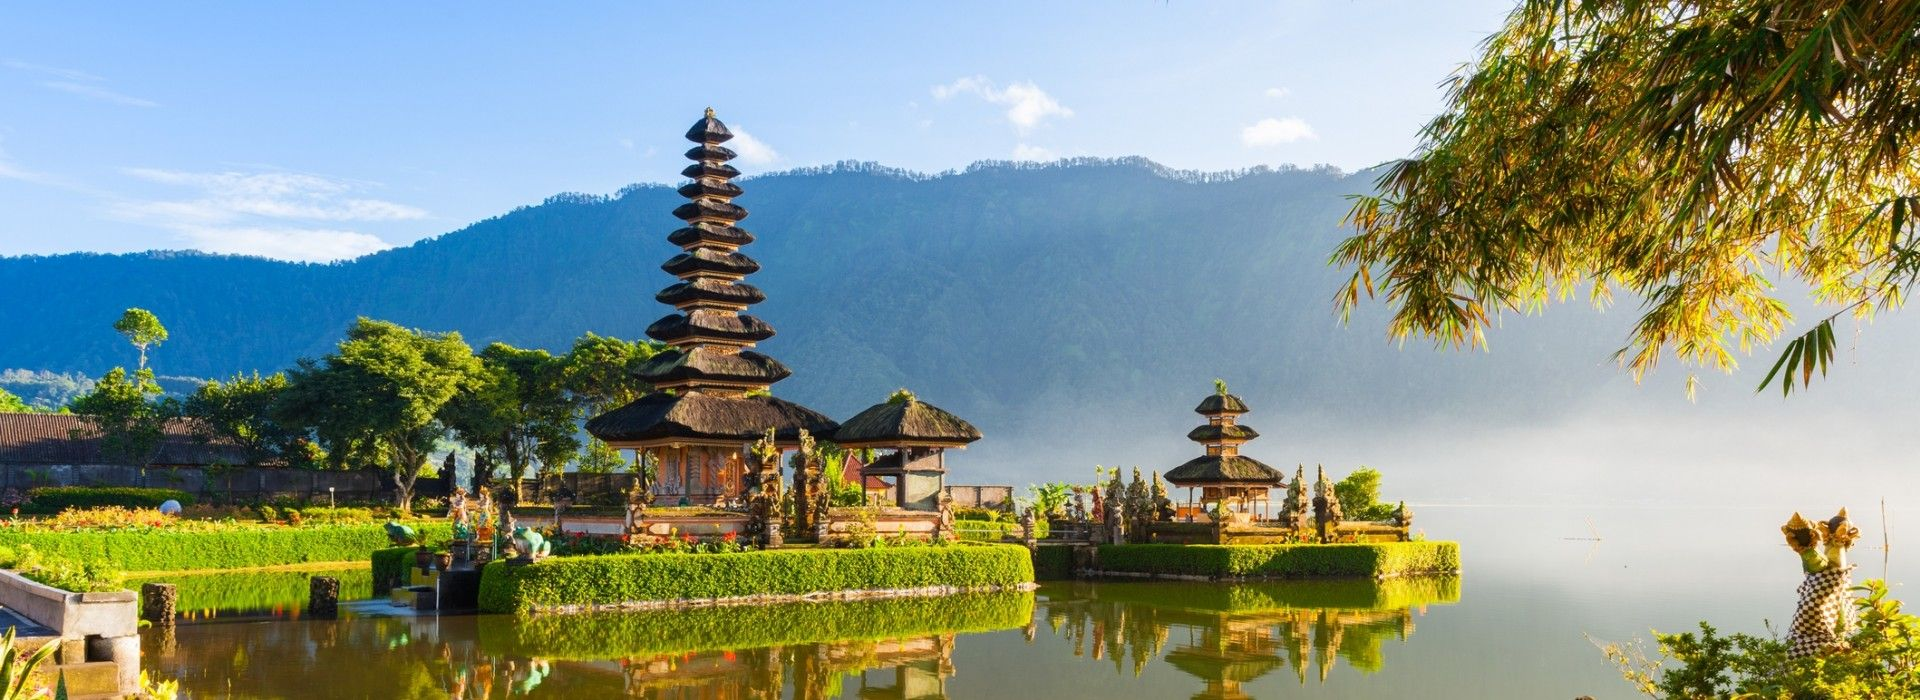 Beach, romance, getaways and relaxation Tours in Bali